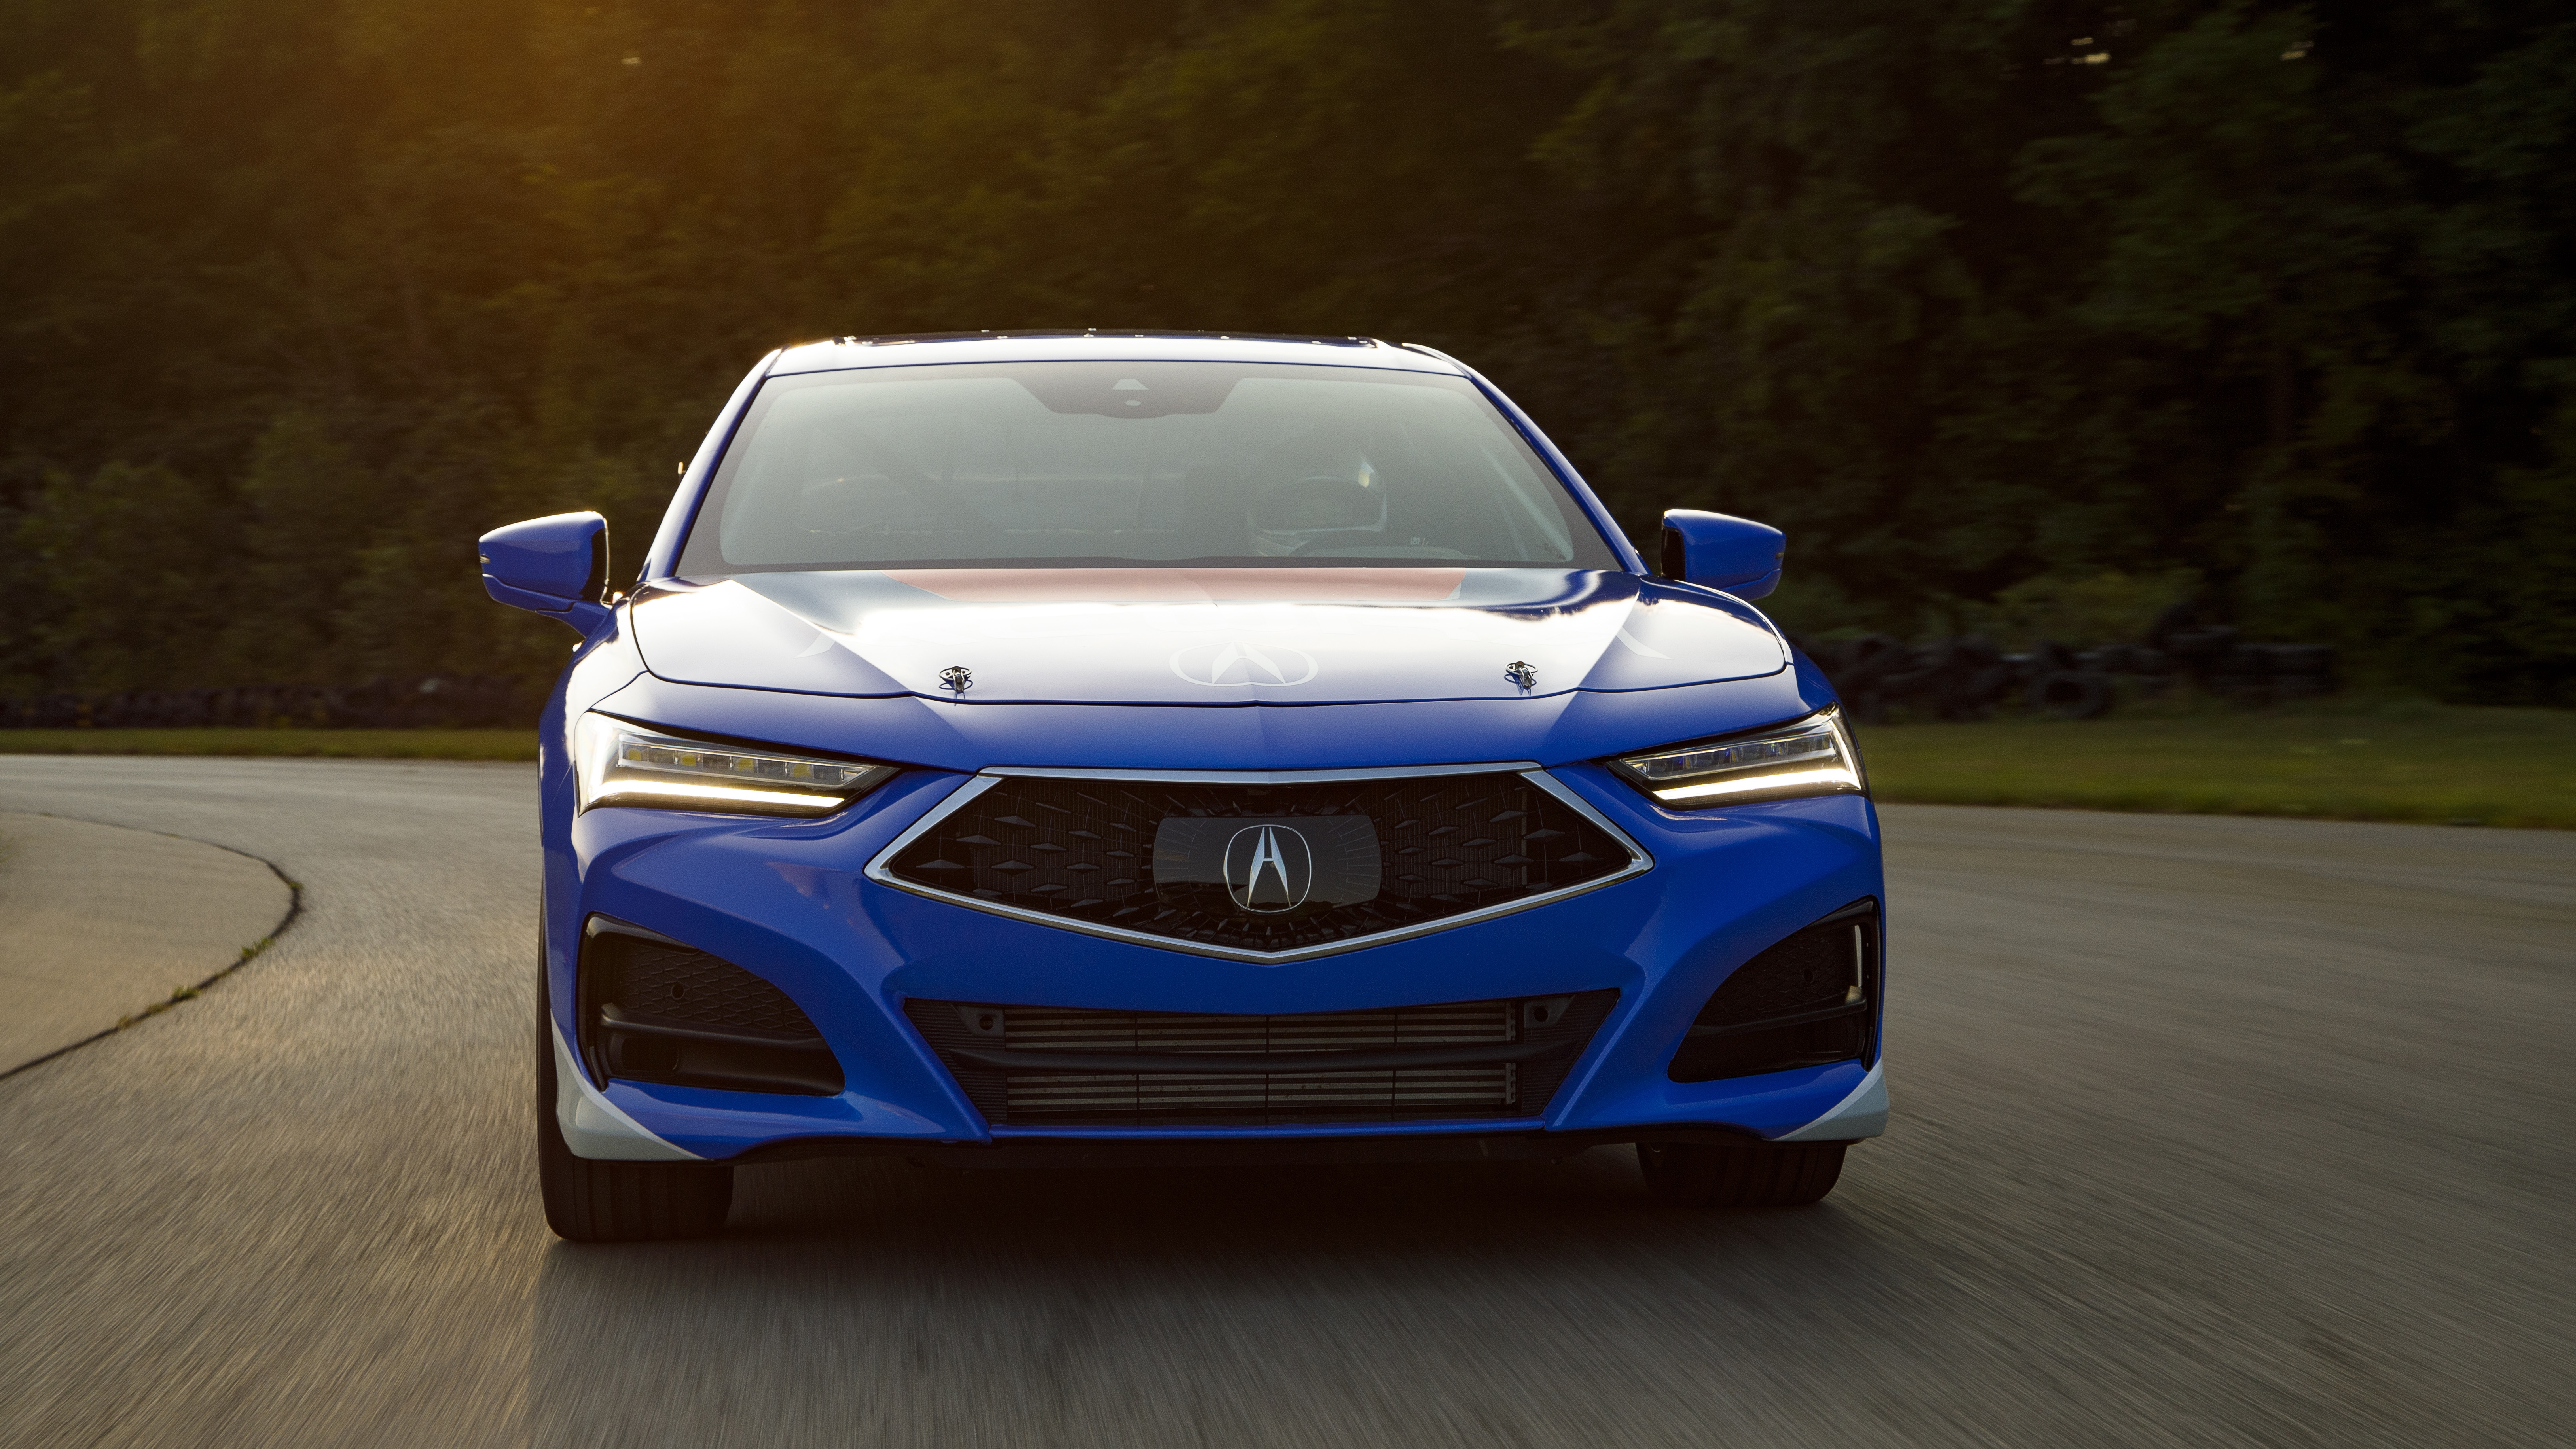 2021 acura tlx types will pack 355 hp 354 lbft of